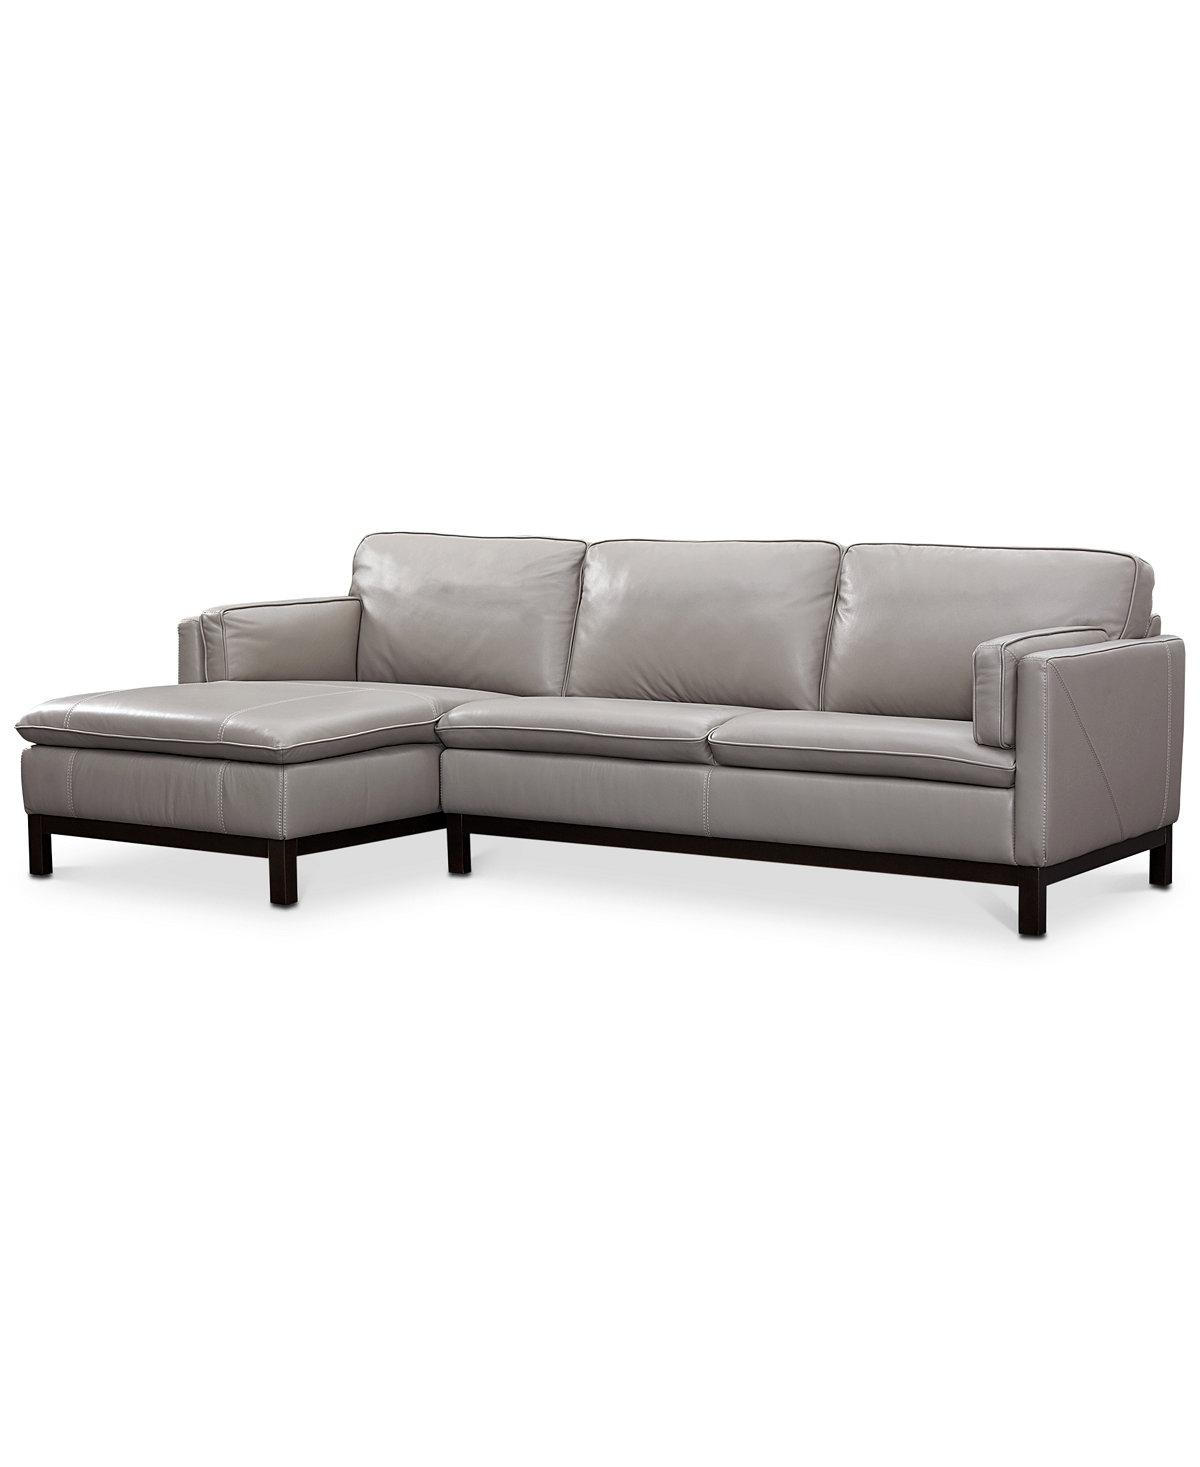 Preferred El Paso Tx Sectional Sofas Pertaining To Ventroso 2 Pc (View 17 of 20)